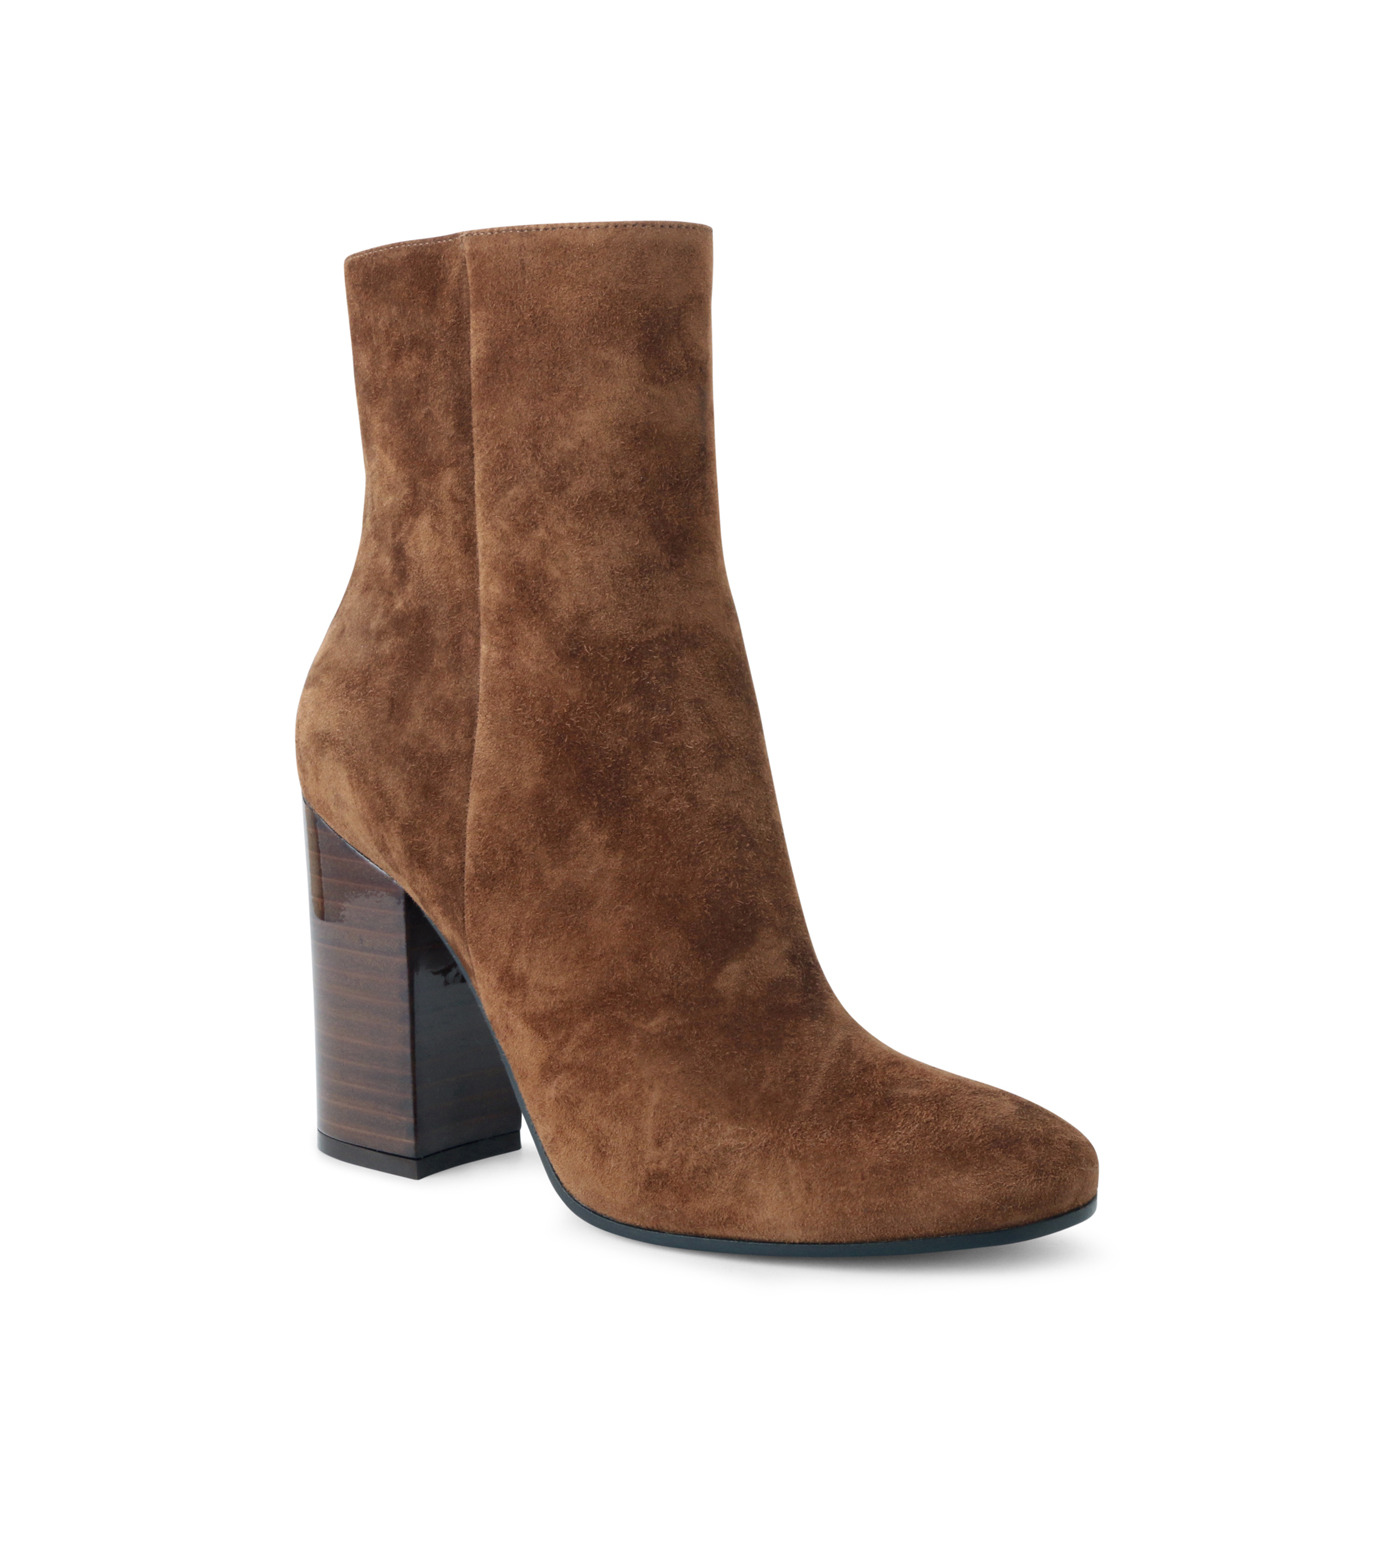 Gianvito Rossi(ジャンヴィト ロッシ)のSuede Short Boots Stucked Heel-CAMEL(ブーツ/boots)-G70546-53 拡大詳細画像1